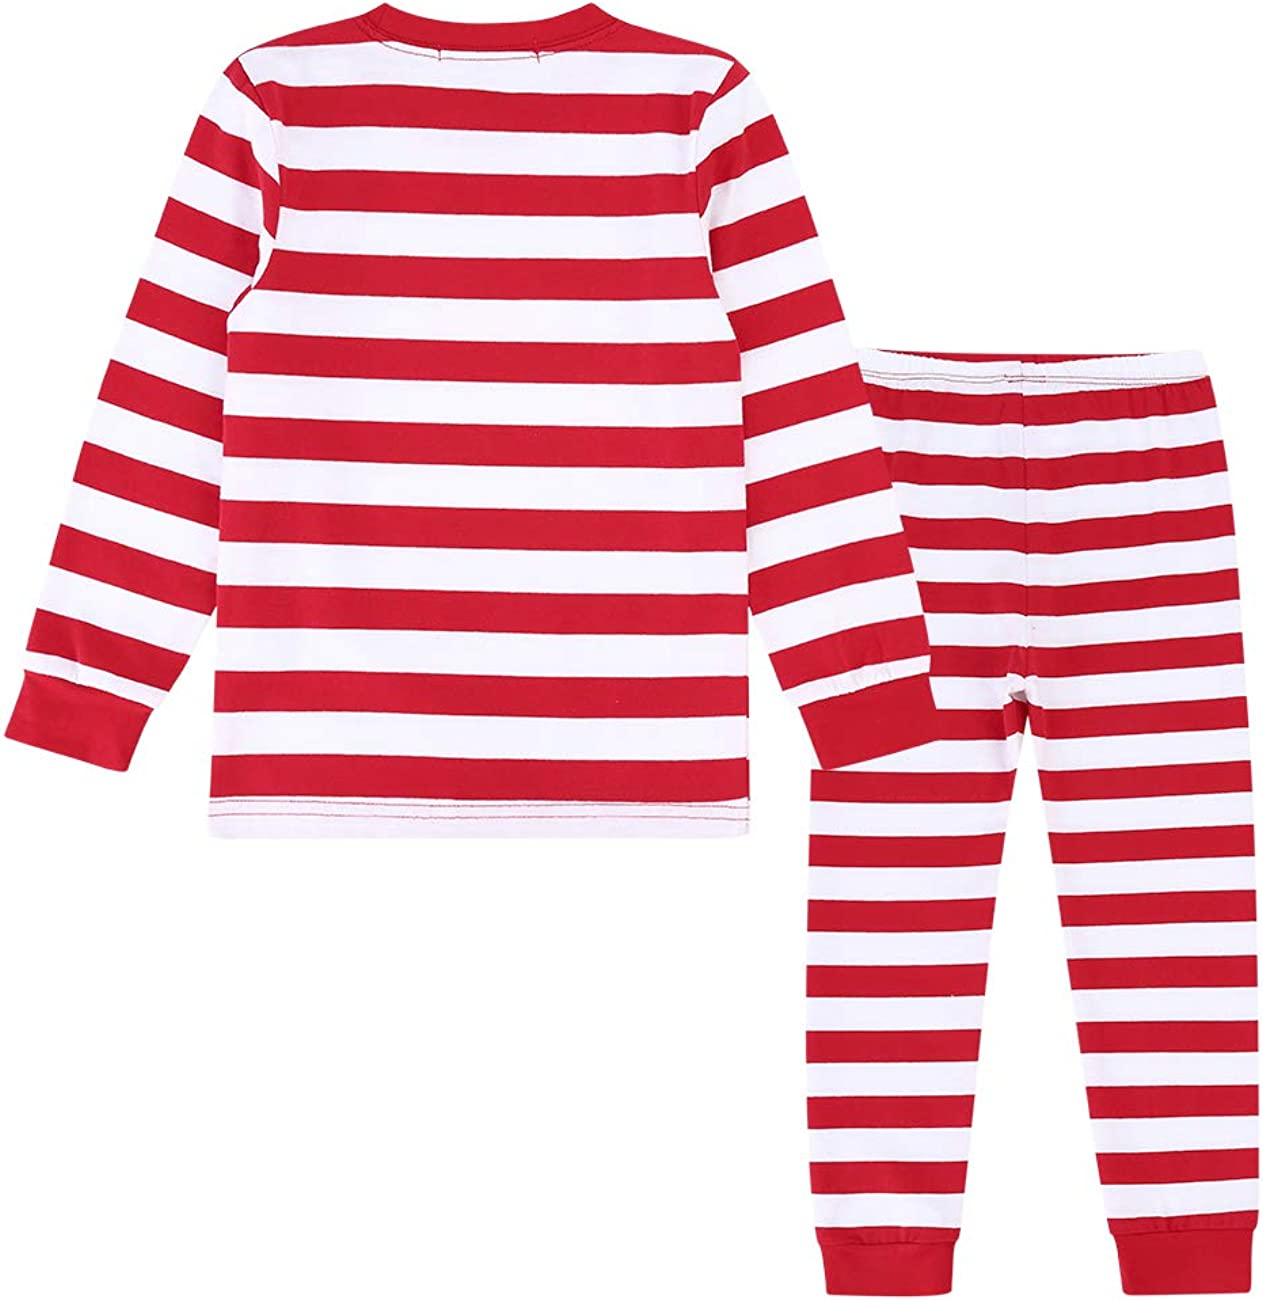 Kidlove Toddlers Long Sleeve T-Shirt Top Striped Pants Outfits Spring Pajamas Set